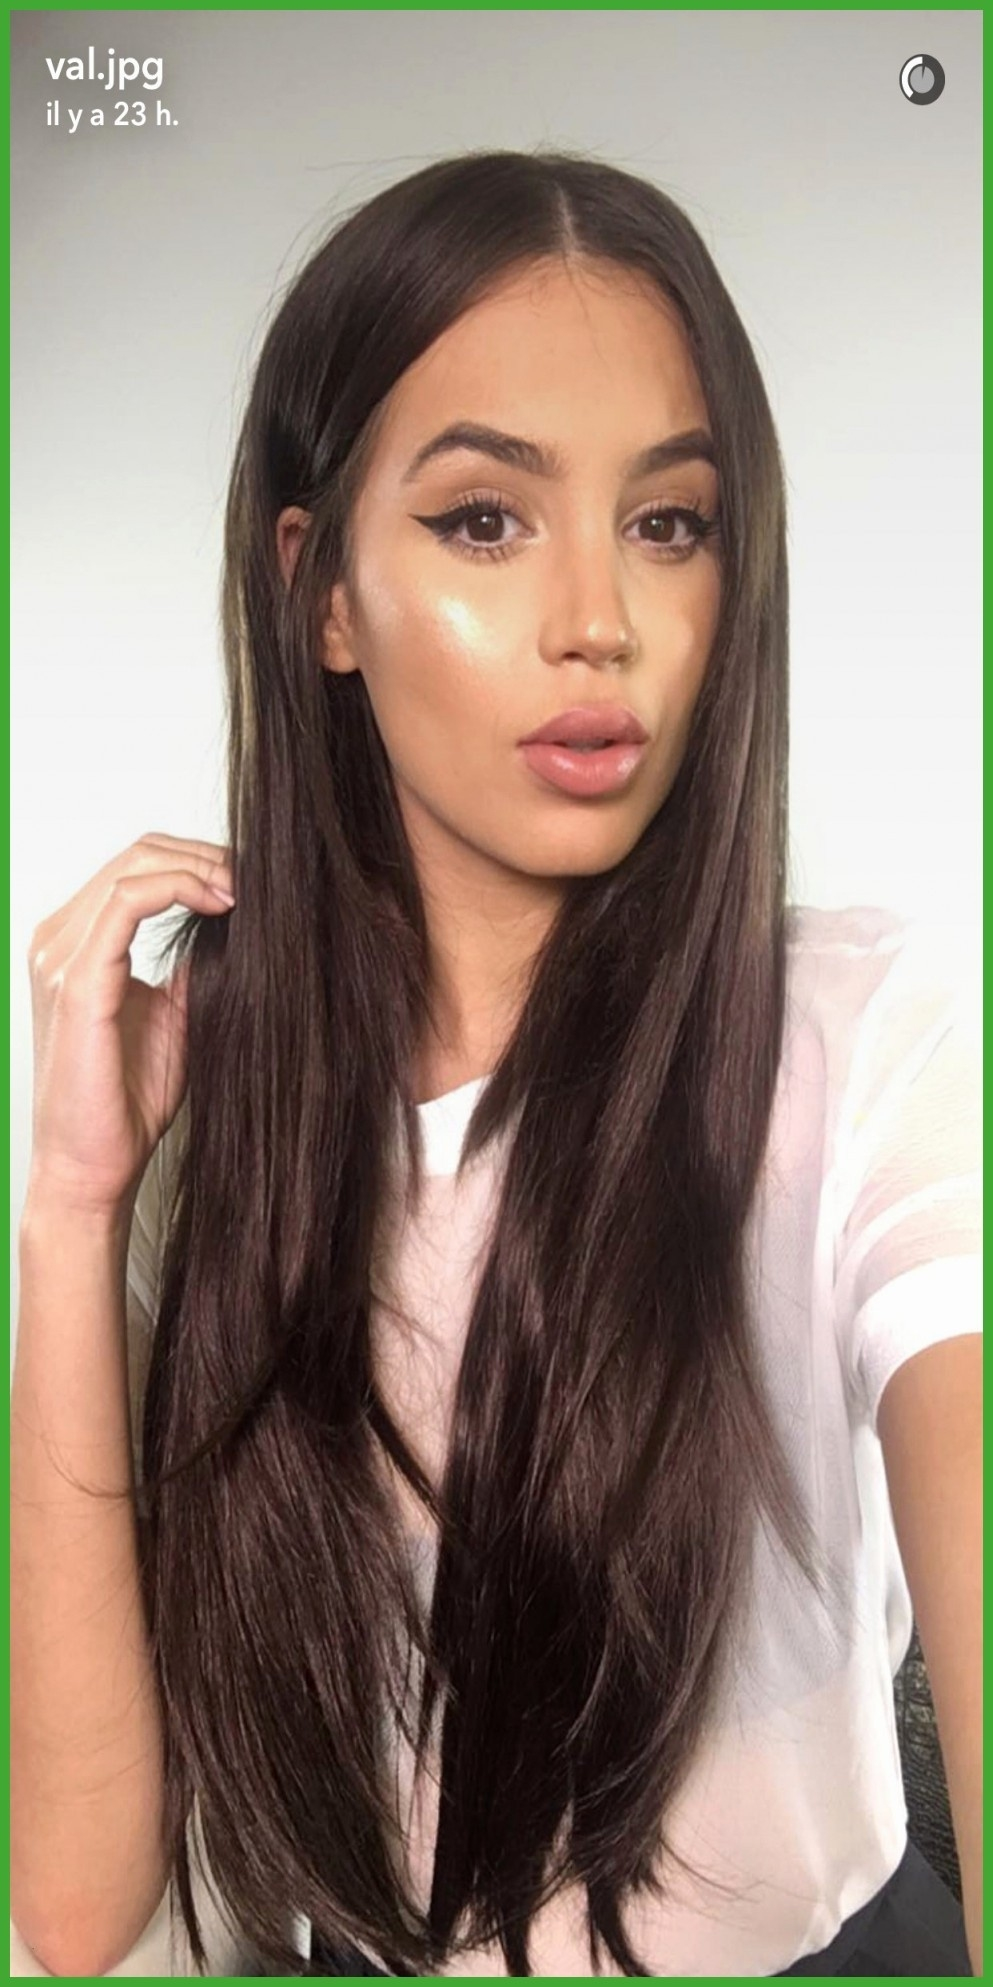 Hairstyles : Wavy Hair For Asian Super Awesome Prom Hairstyles Asian inside Top-drawer Asian Hairstyles For Prom